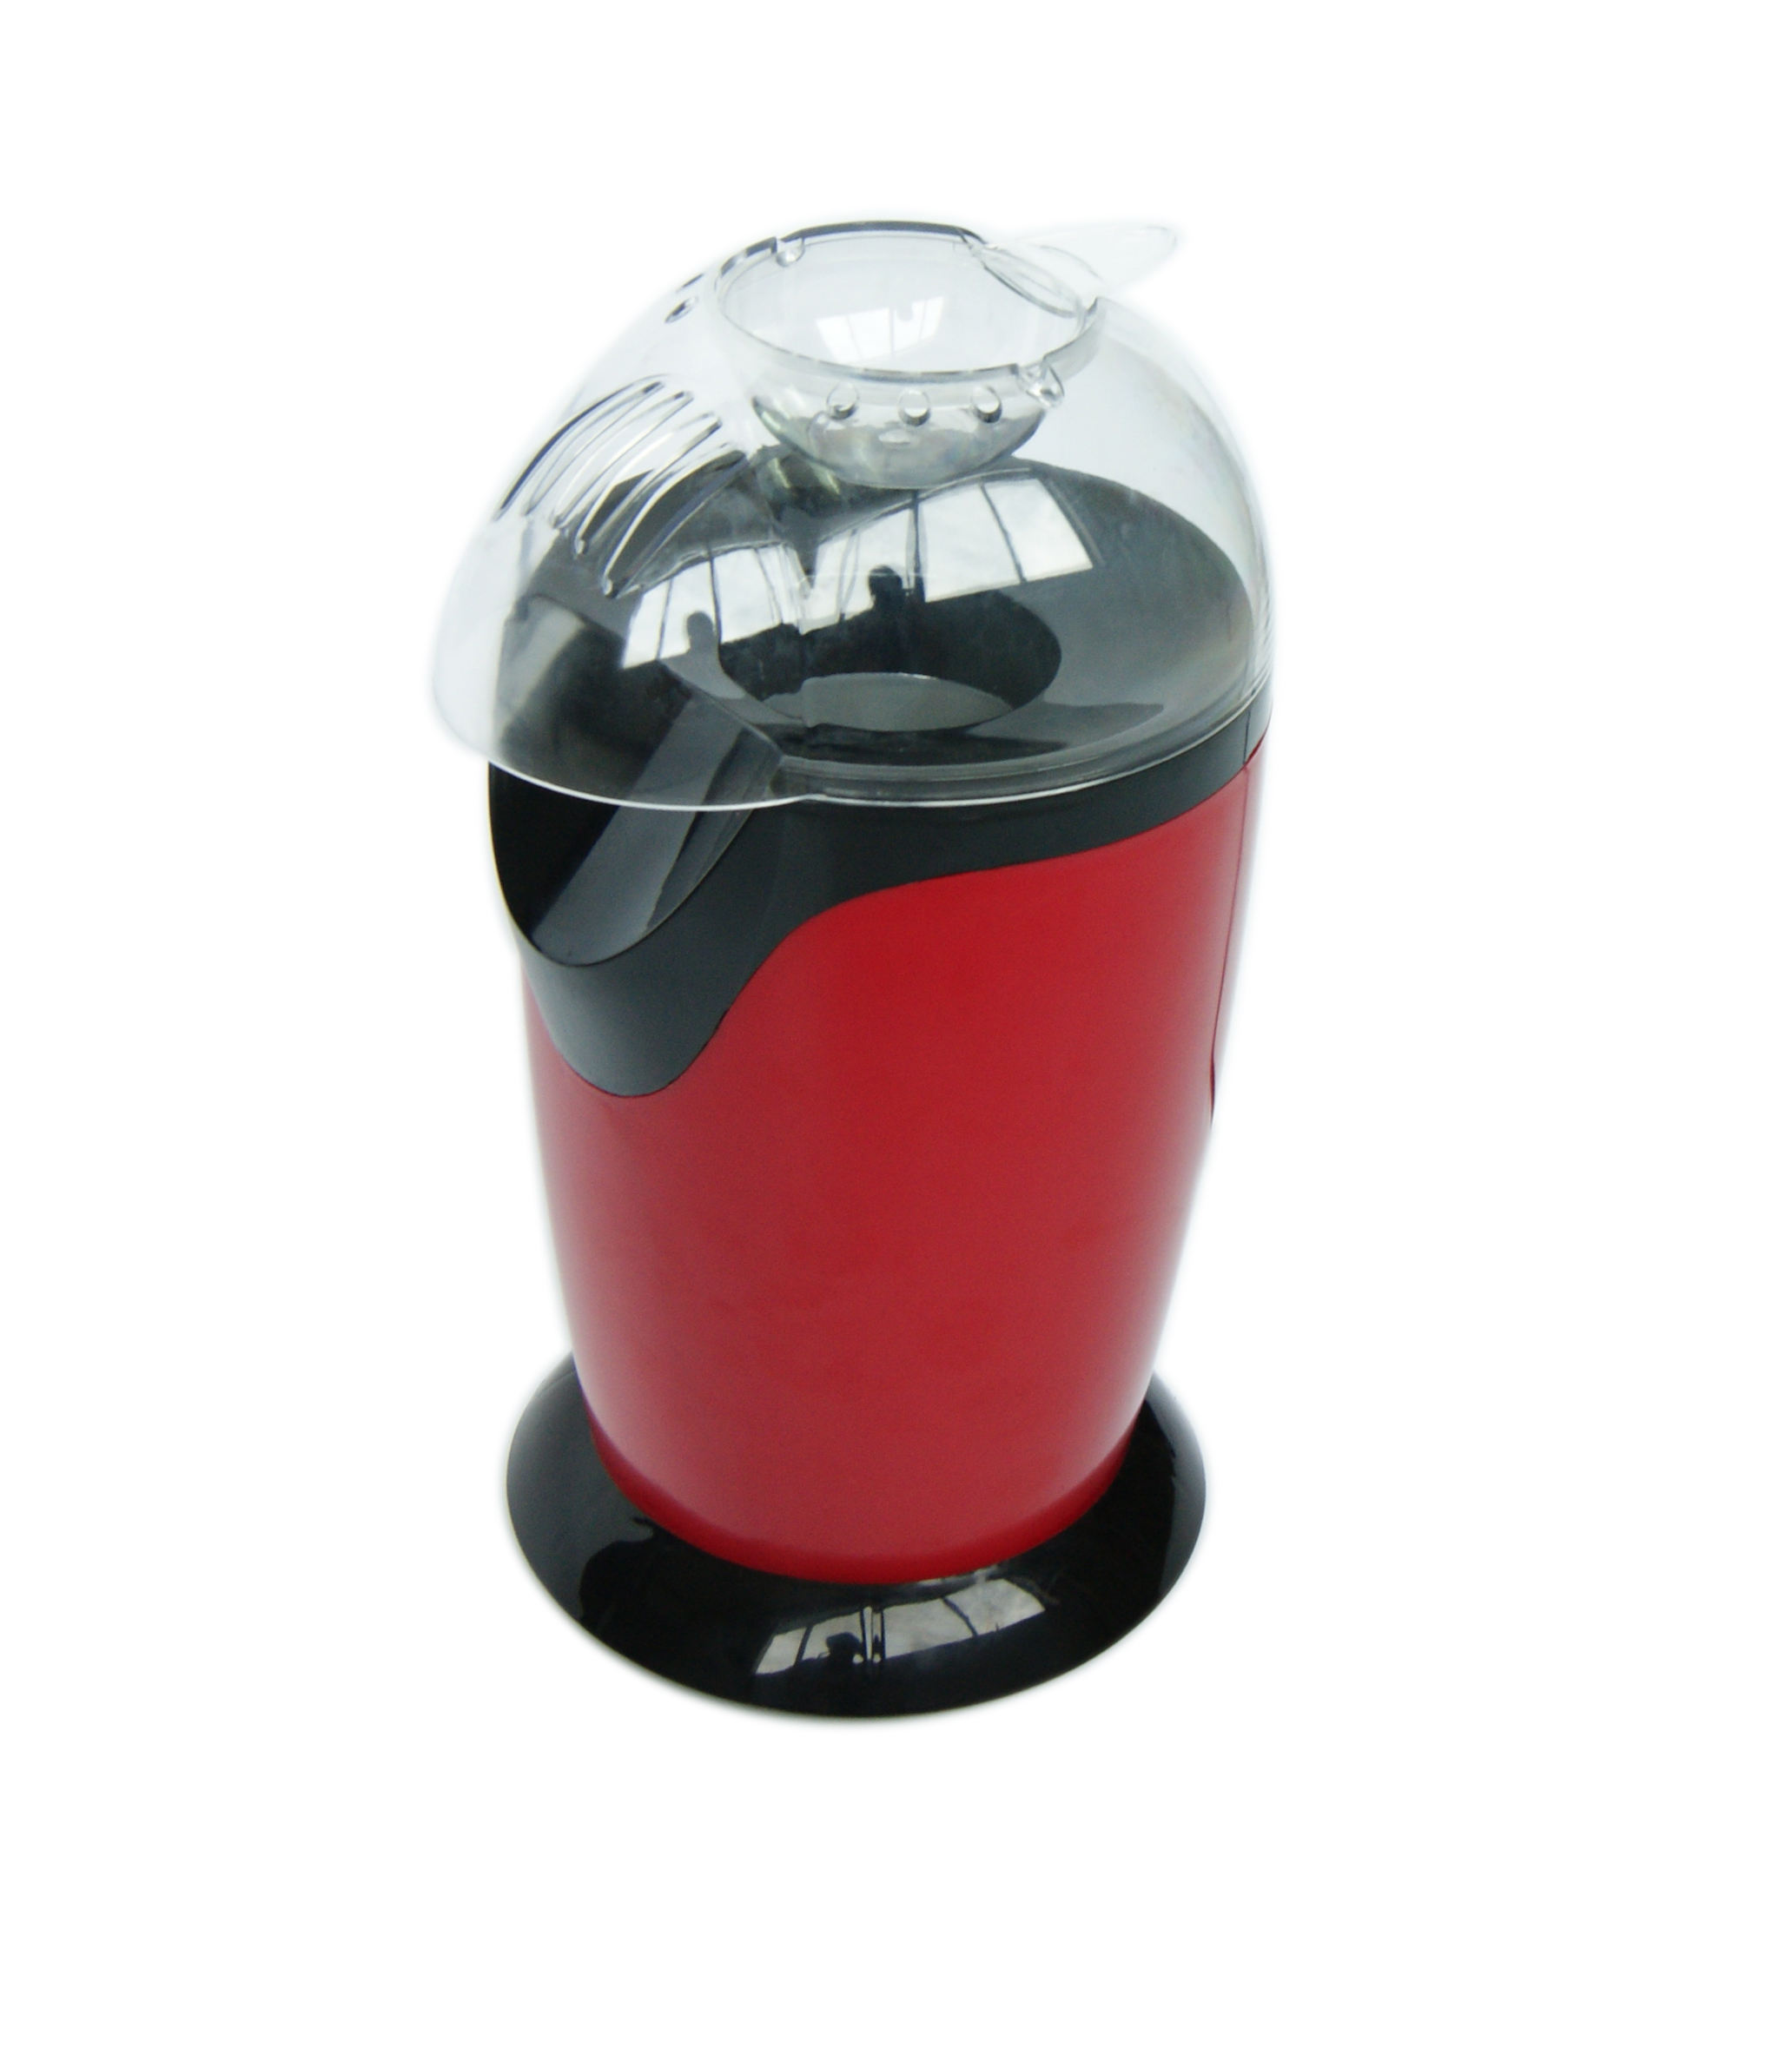 BEST Seller good quality 1200w home round popcorn maker for sale